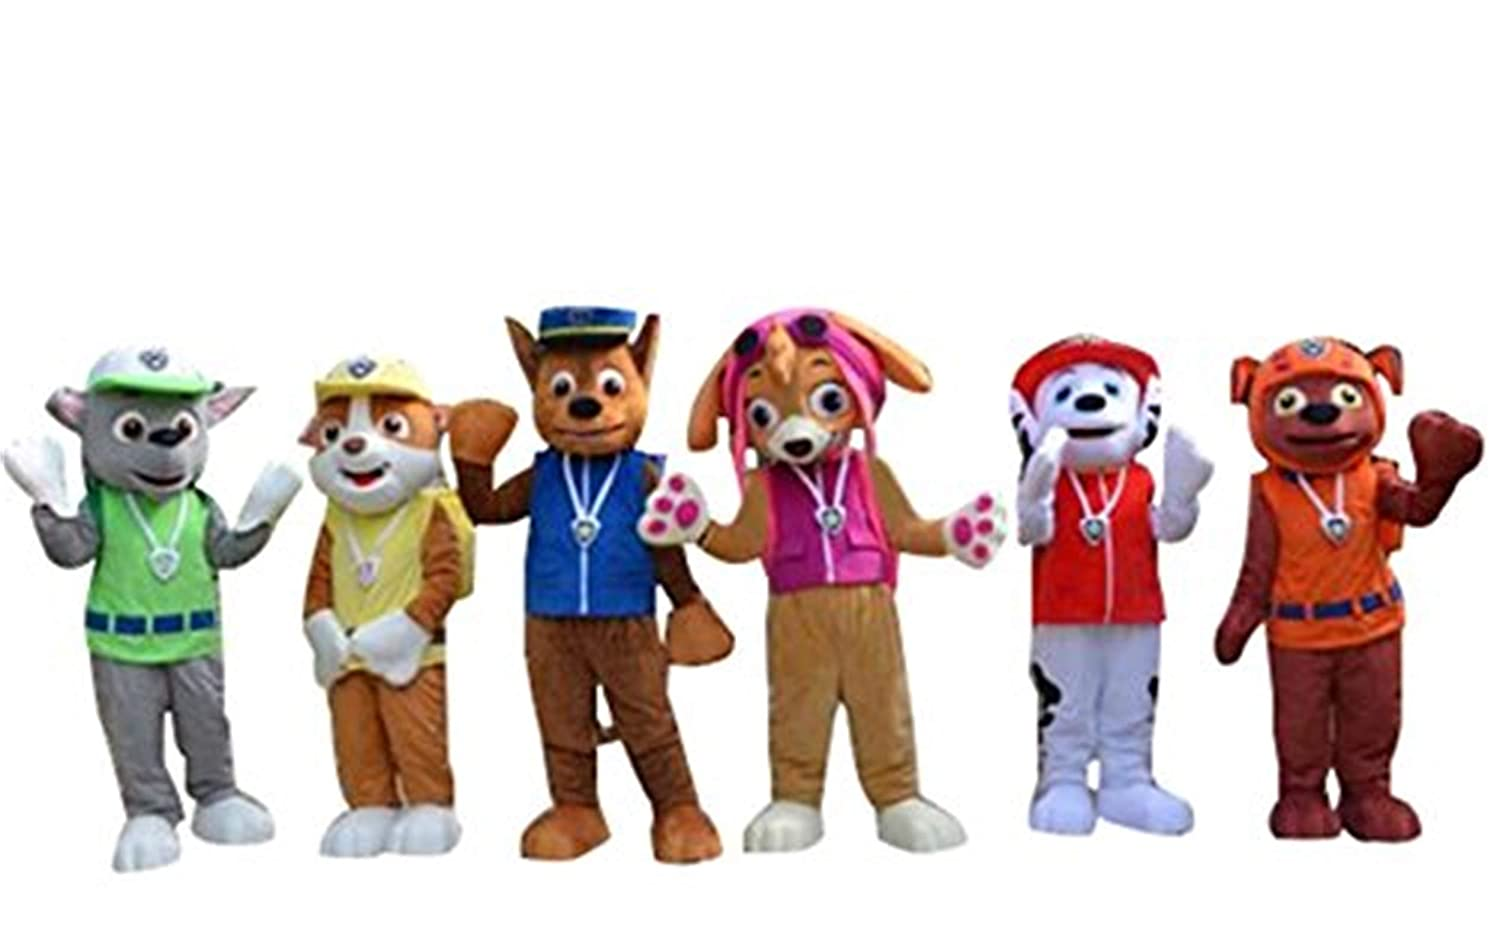 Marshall Paw Patrol Dog Dogs Adult Mascot Costume Cosplay Fancy Dress Outfit in red Suit